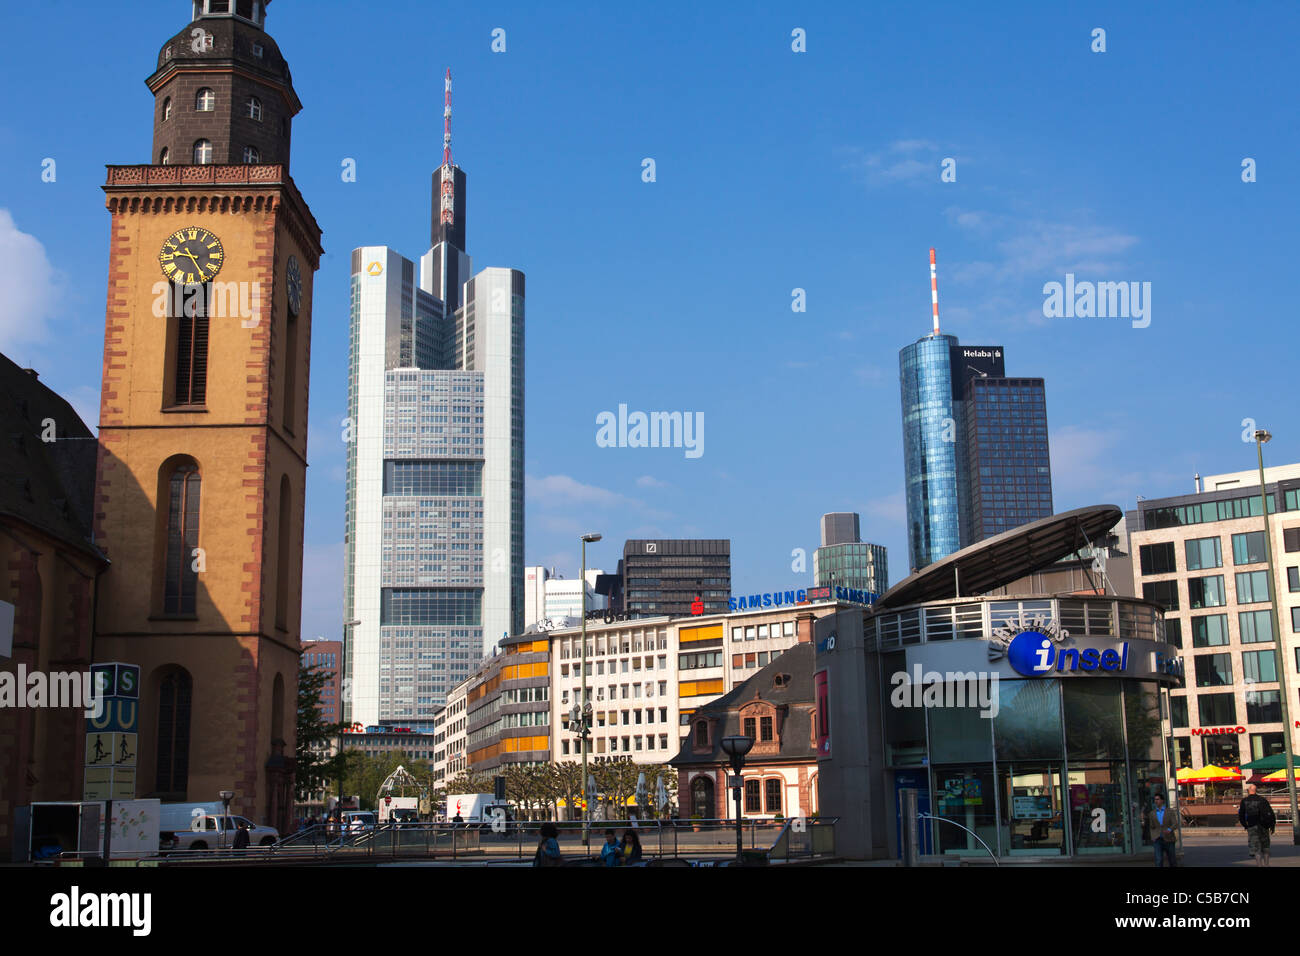 Frankfurt modern architecture shopping centre office buildings church - Stock Image